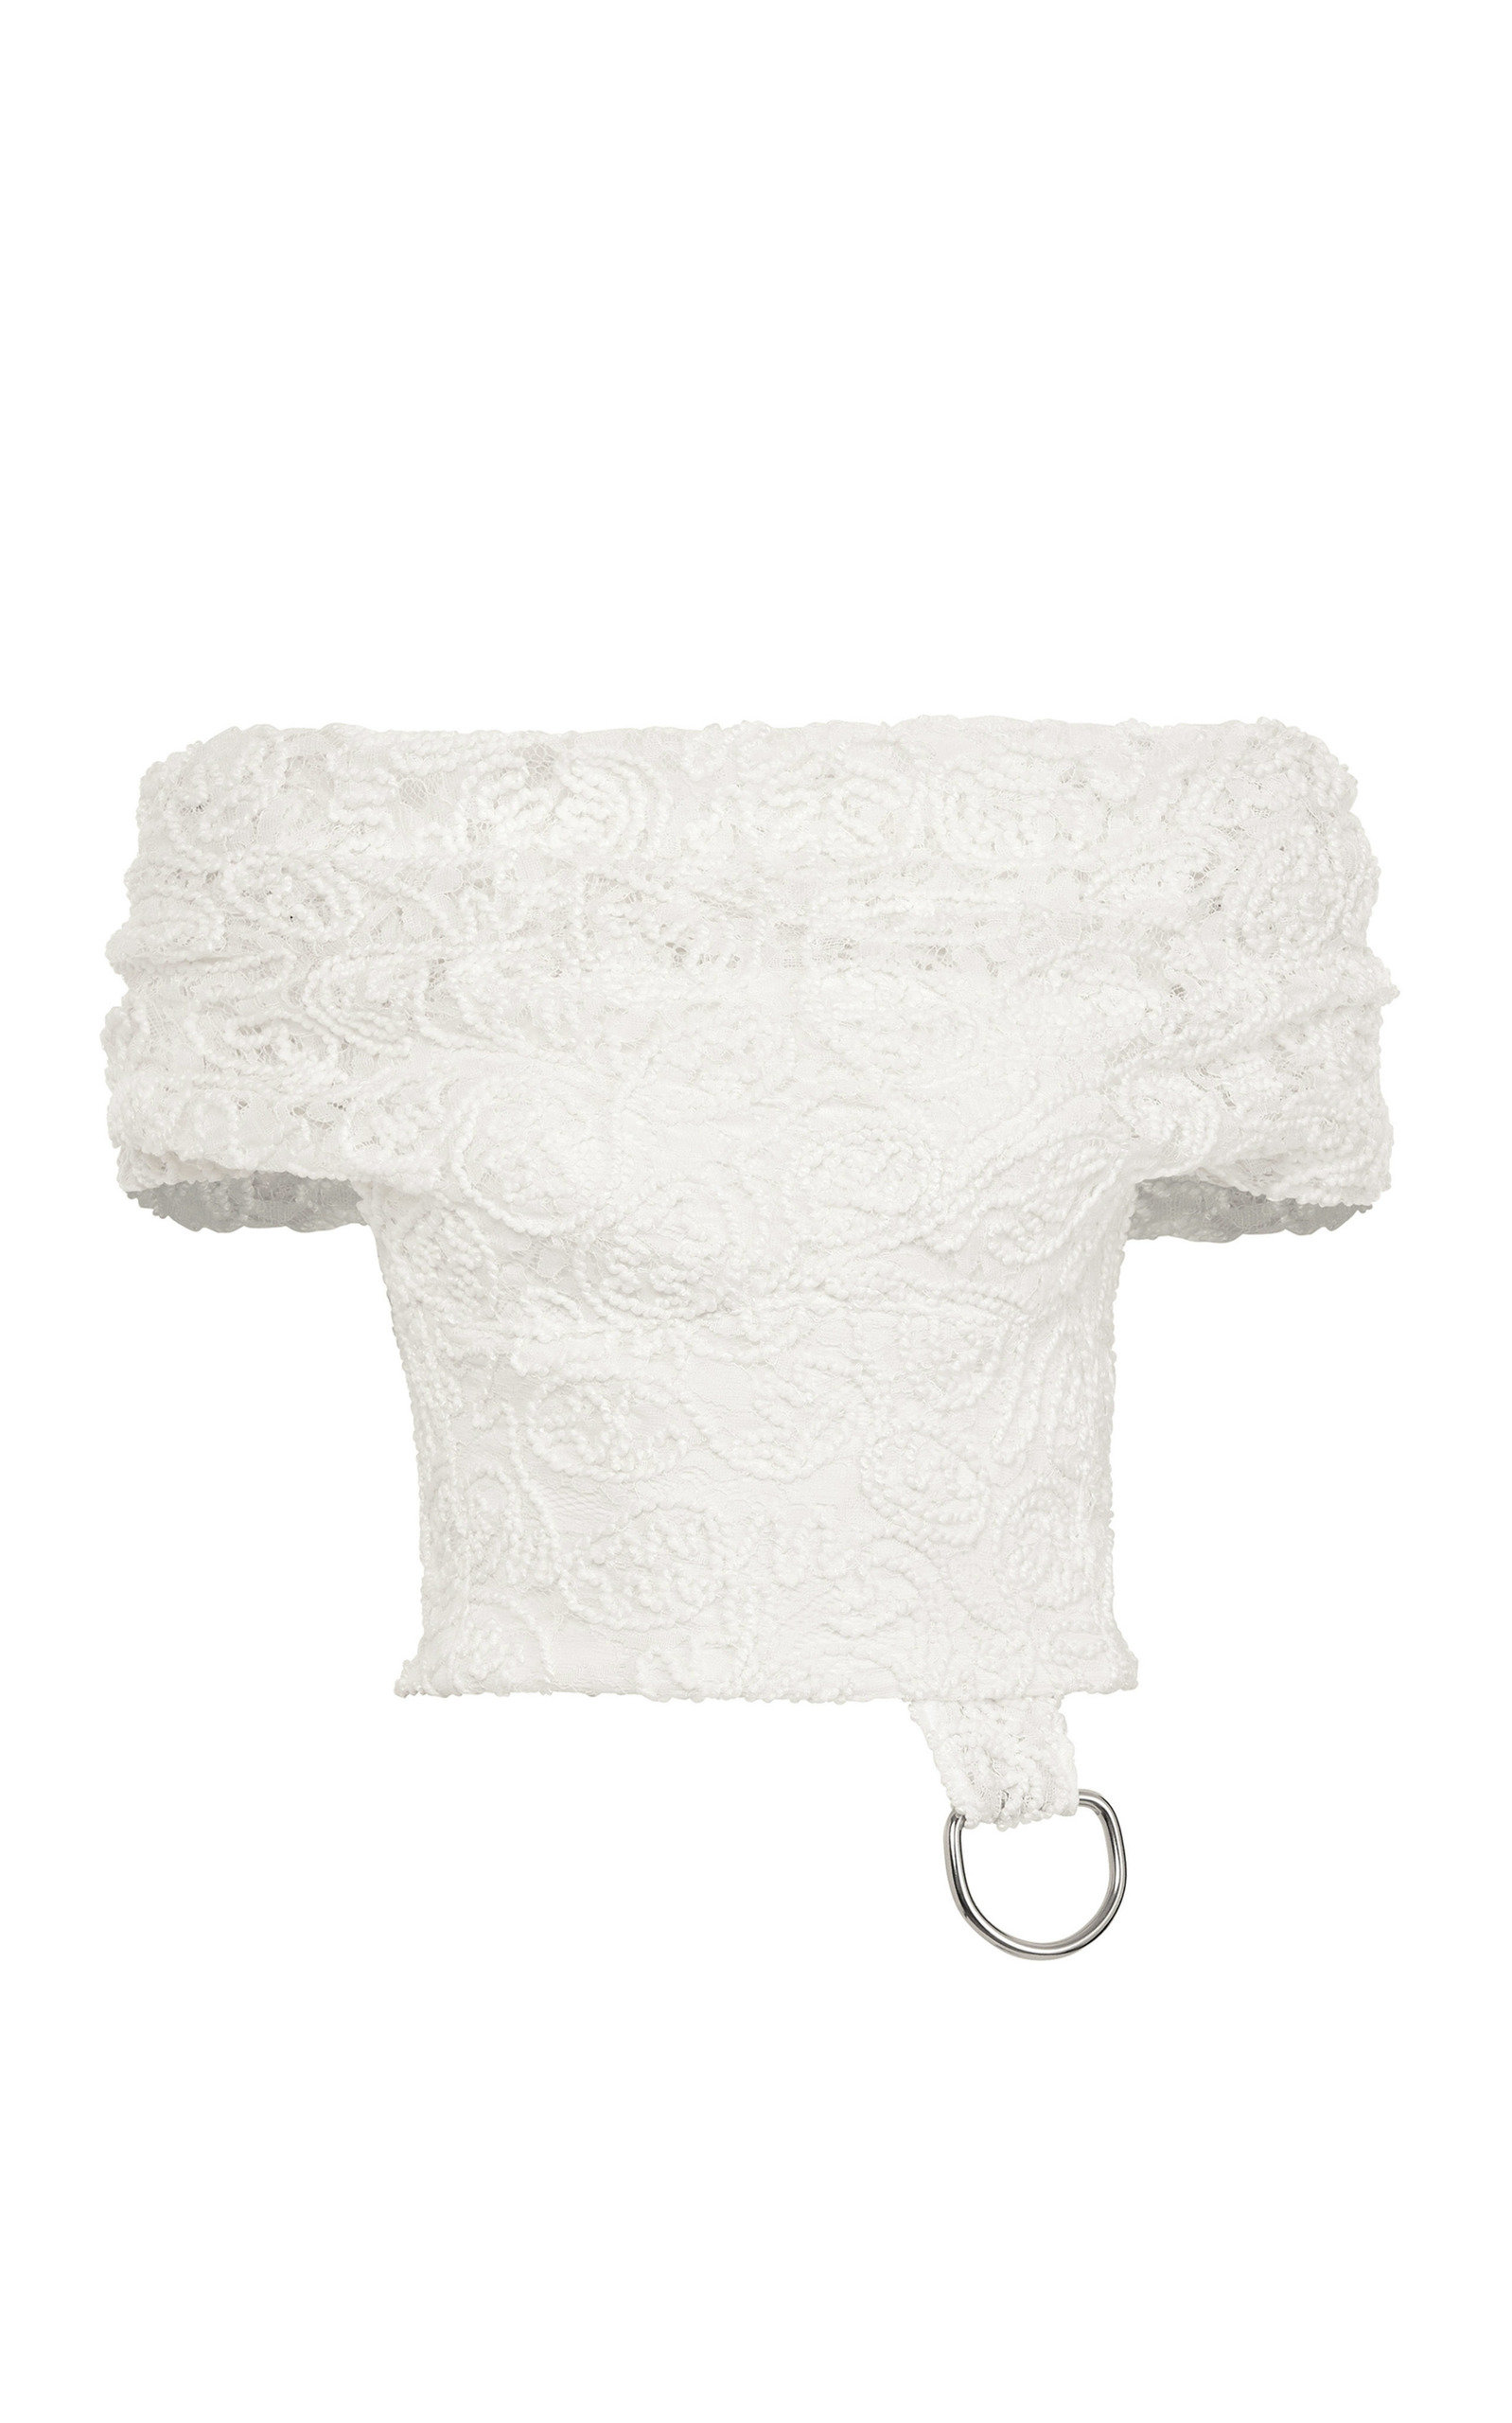 MATICEVSKI Embrace Embroidered Lace Off-The-Shoulder Crop Top in White